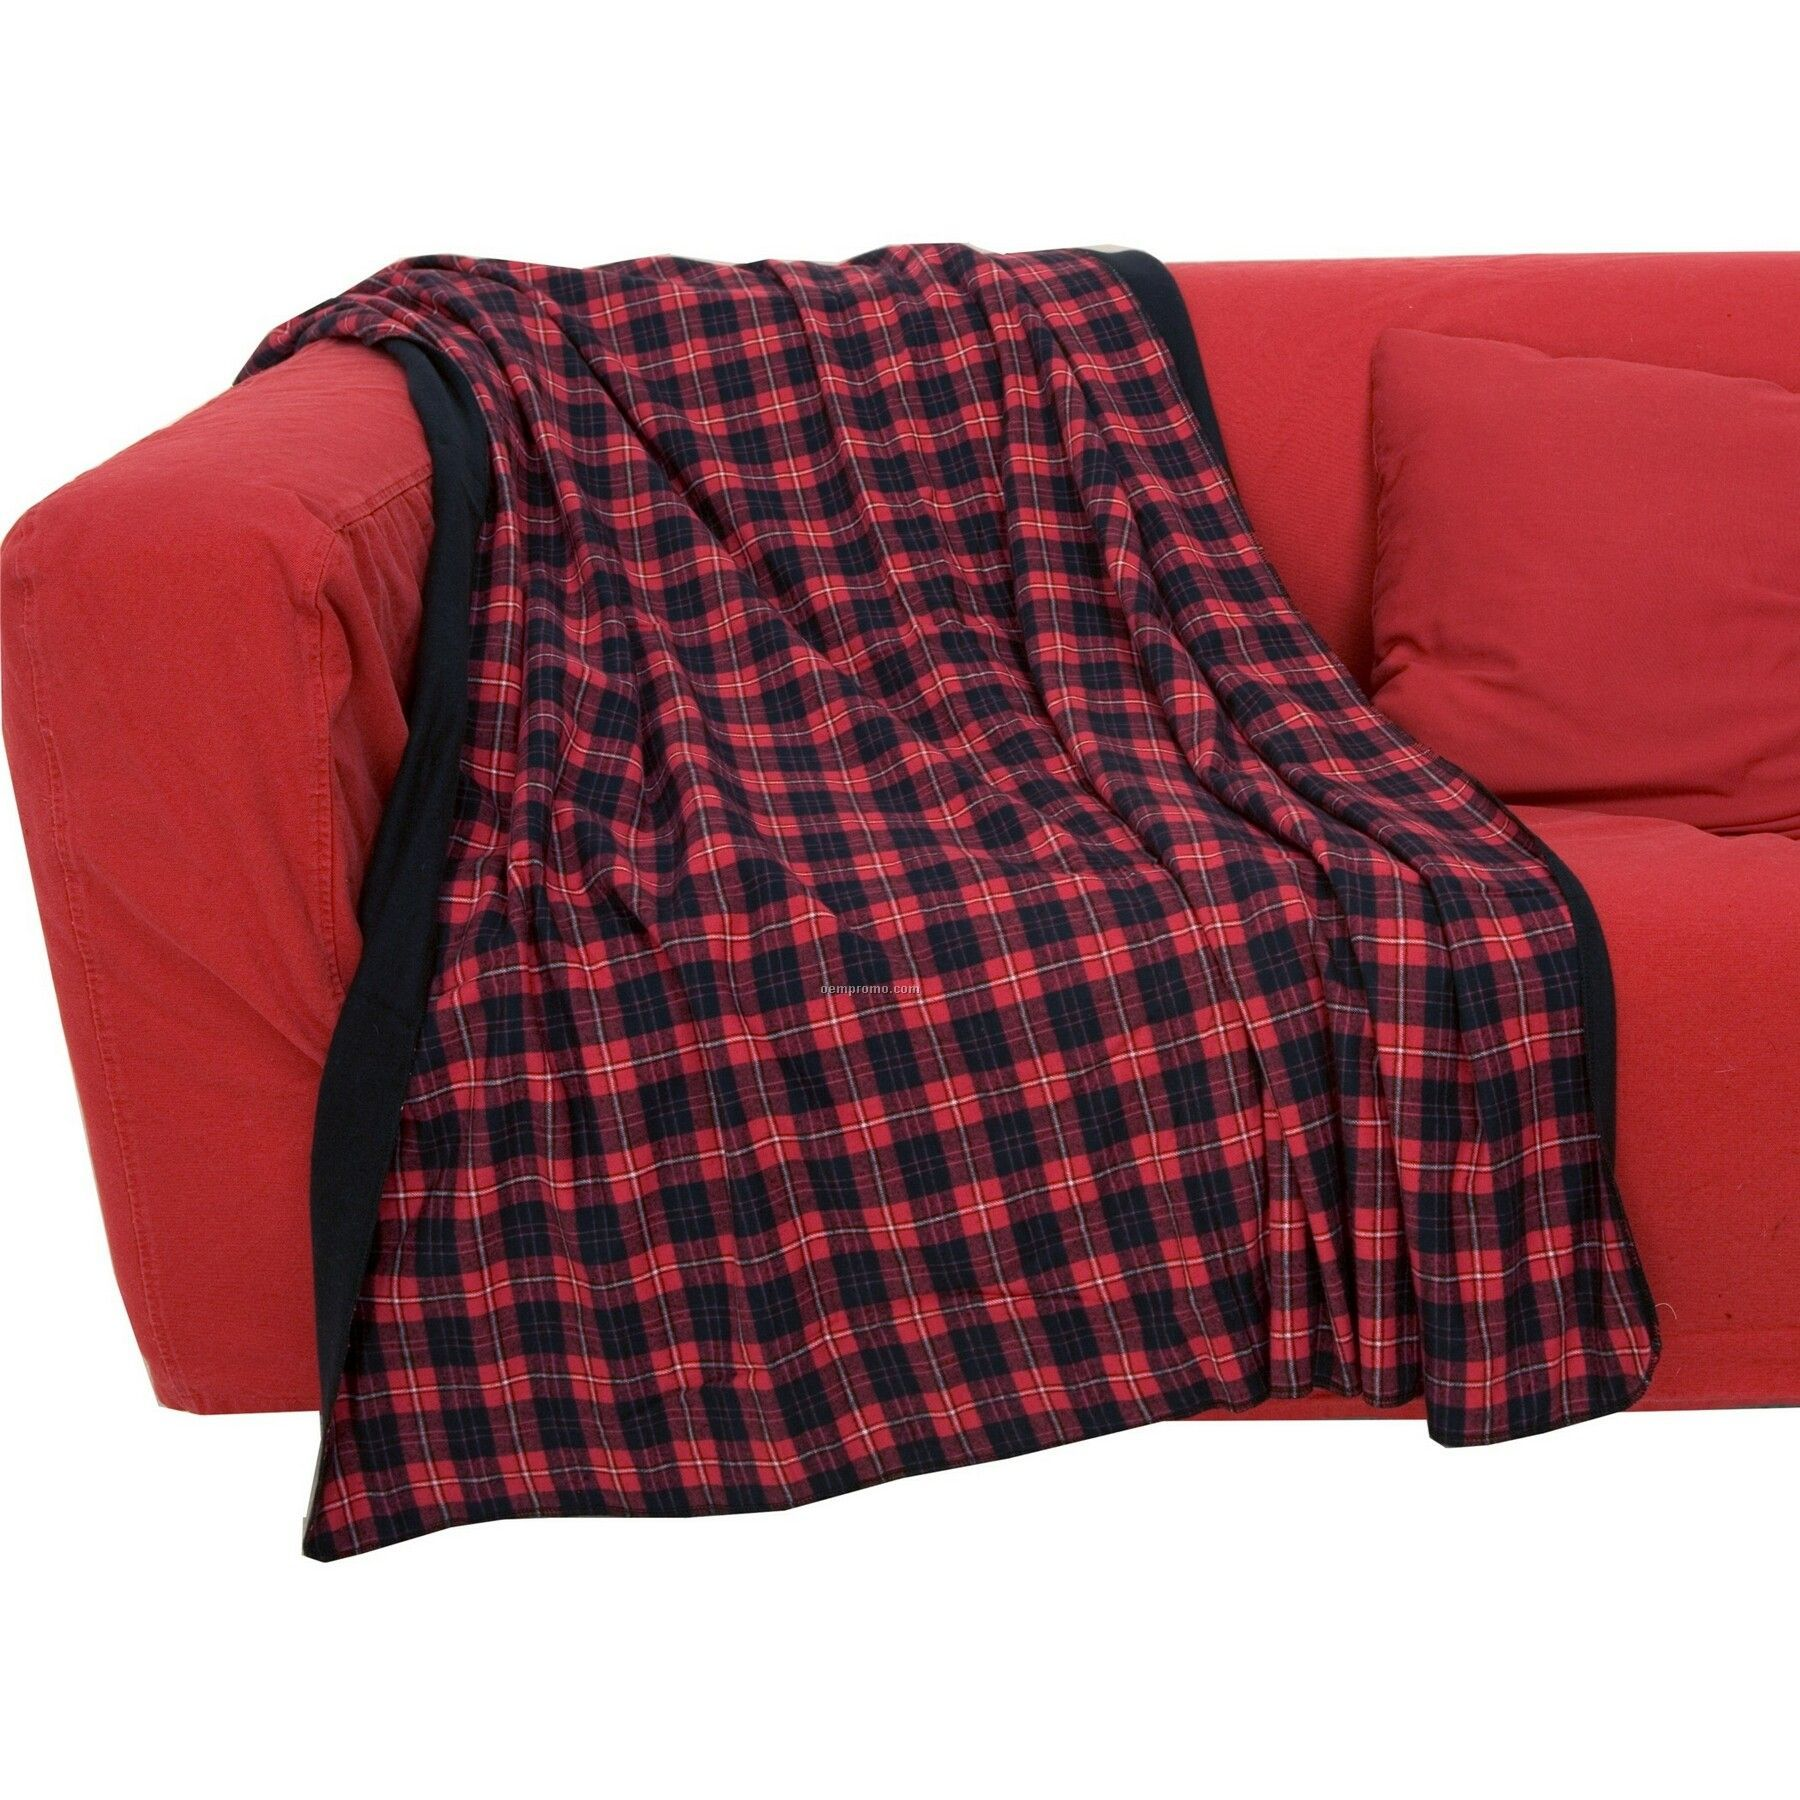 We currently offer fantasticWe currently offer fantasticwholesaleprices for our trade customers, so, If you would like to become aWe currently offer fantasticWe currently offer fantasticwholesaleprices for our trade customers, so, If you would like to become aTartan BlanketCo. stockist please get in touch!